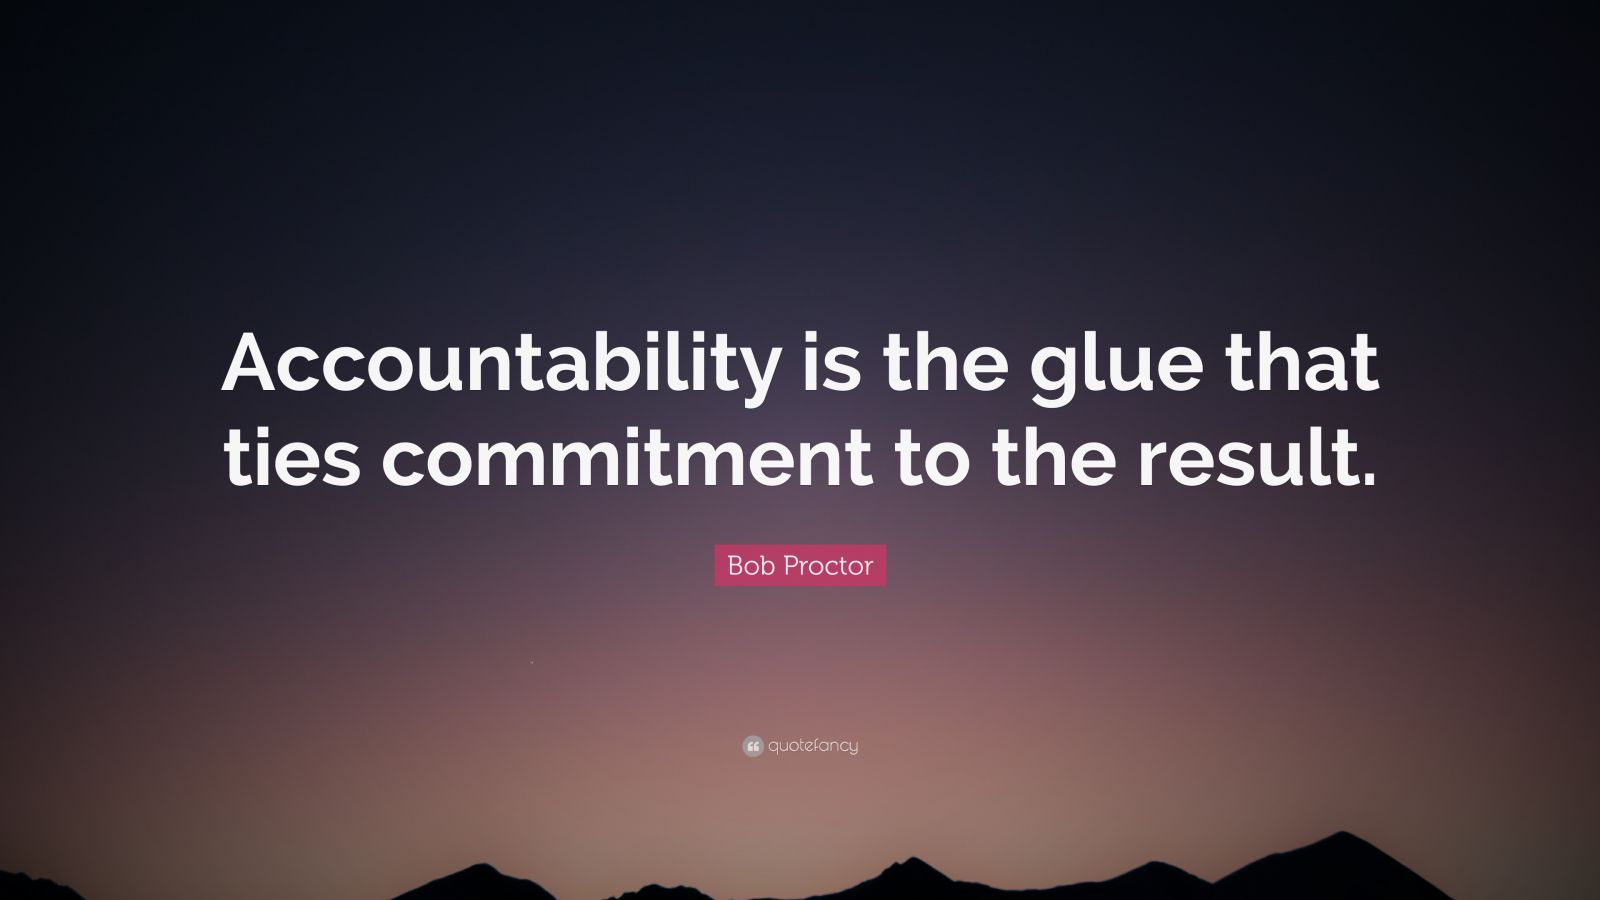 Startup Quotes Wallpaper Bob Proctor Quote Accountability Is The Glue That Ties